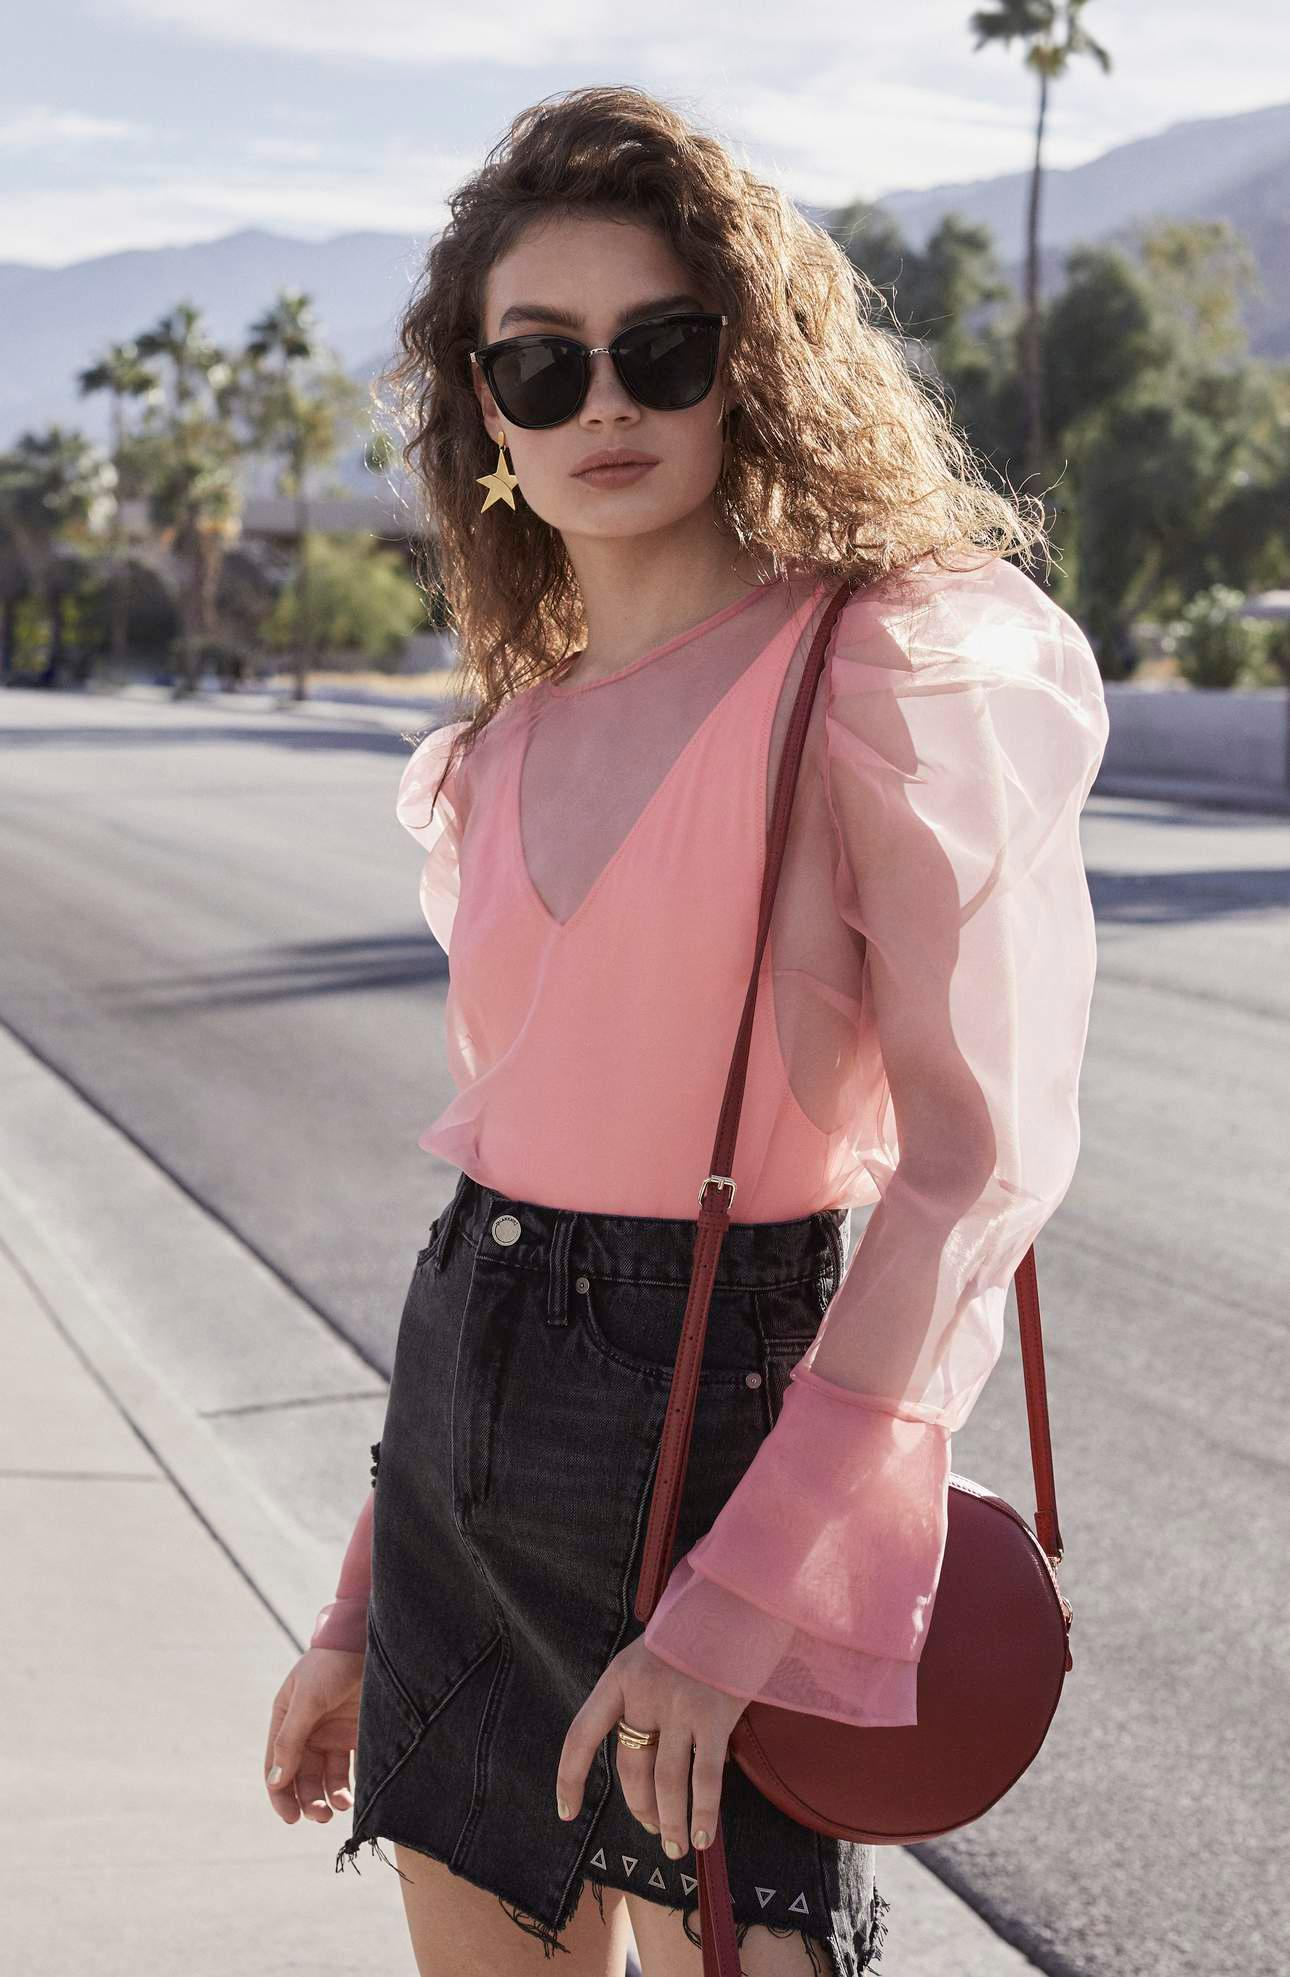 Romantic dressing gets assertive for spring. Florals are bright, silhouettes are cropped, and distressed denim goes high shine. Even the season's hottest round bag is declaring itself. Go BOLD or go home this Spring!!!! (Image: Nordstrom){&amp;nbsp;}<p></p>